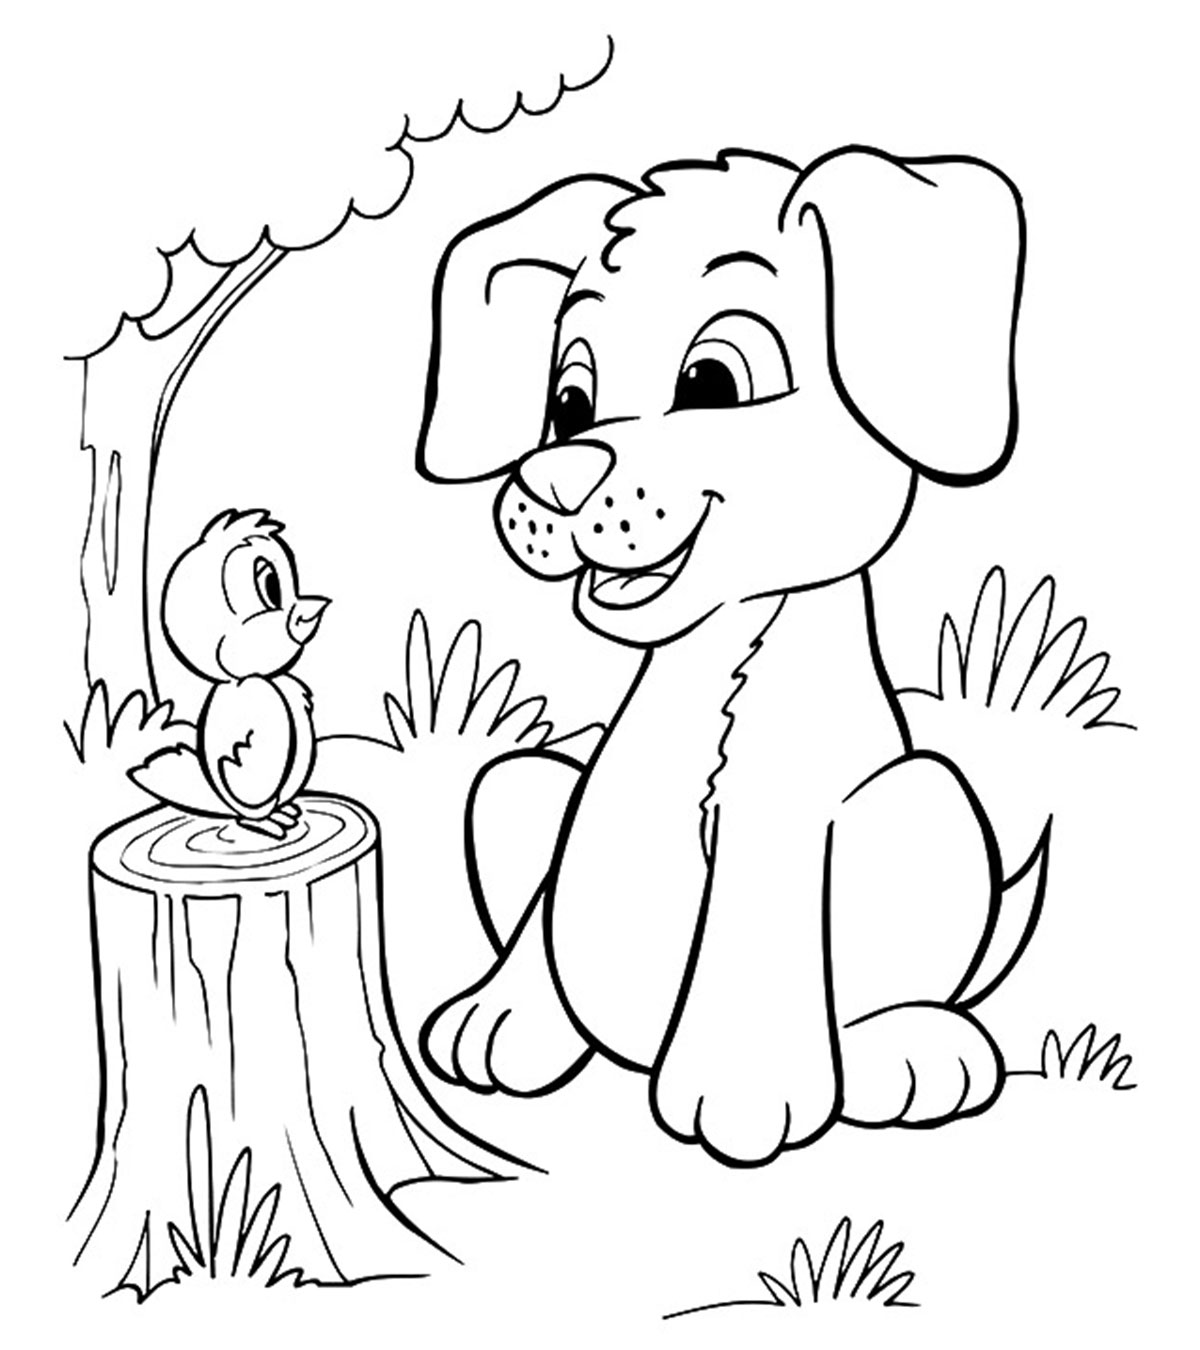 free coloring pages of realistic animals husky coloring pages free printable coloring pages for kids coloring pages free realistic animals of